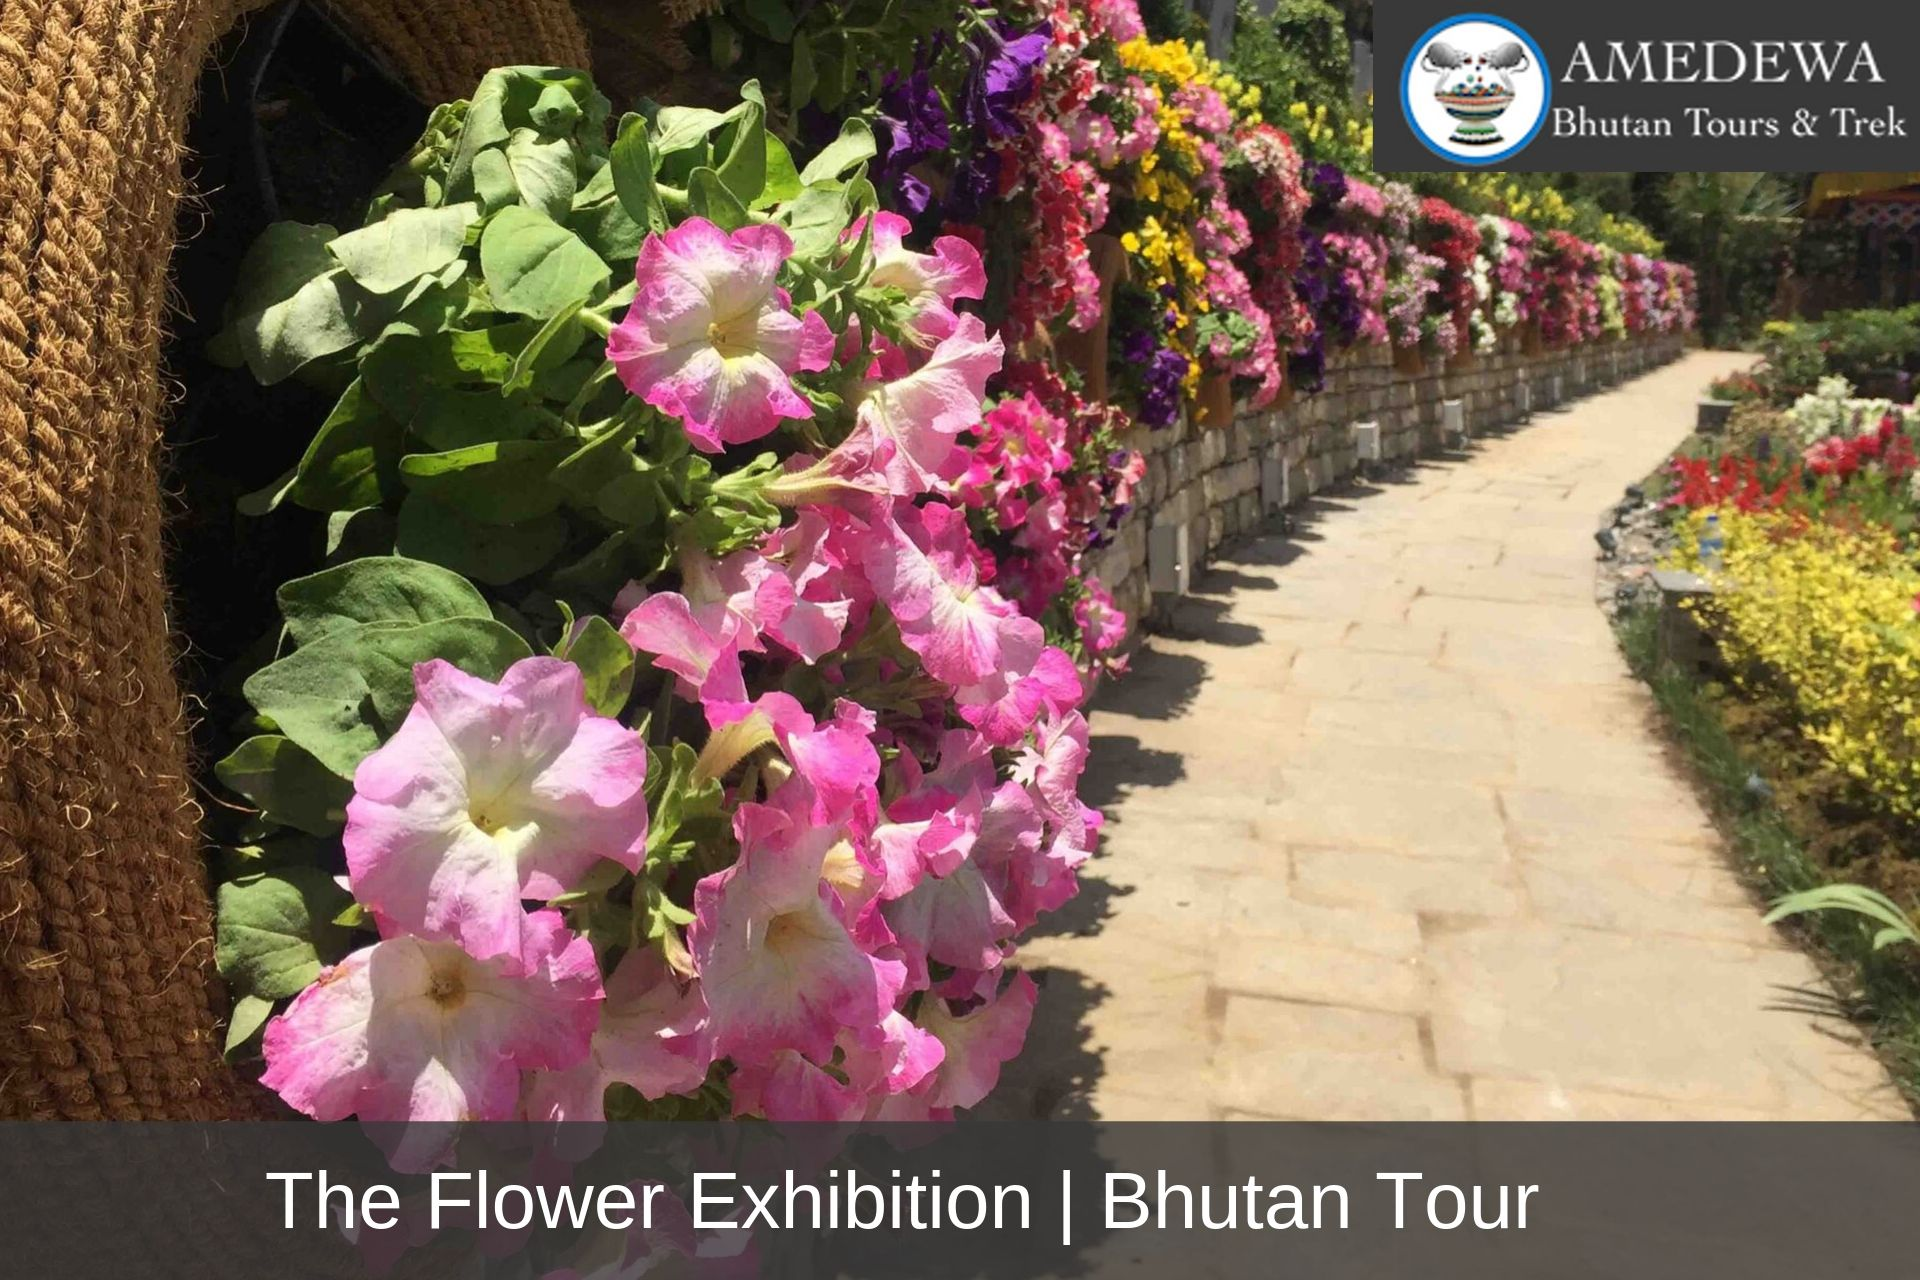 The Flower Exhibition - Amedewa Tours & Trek